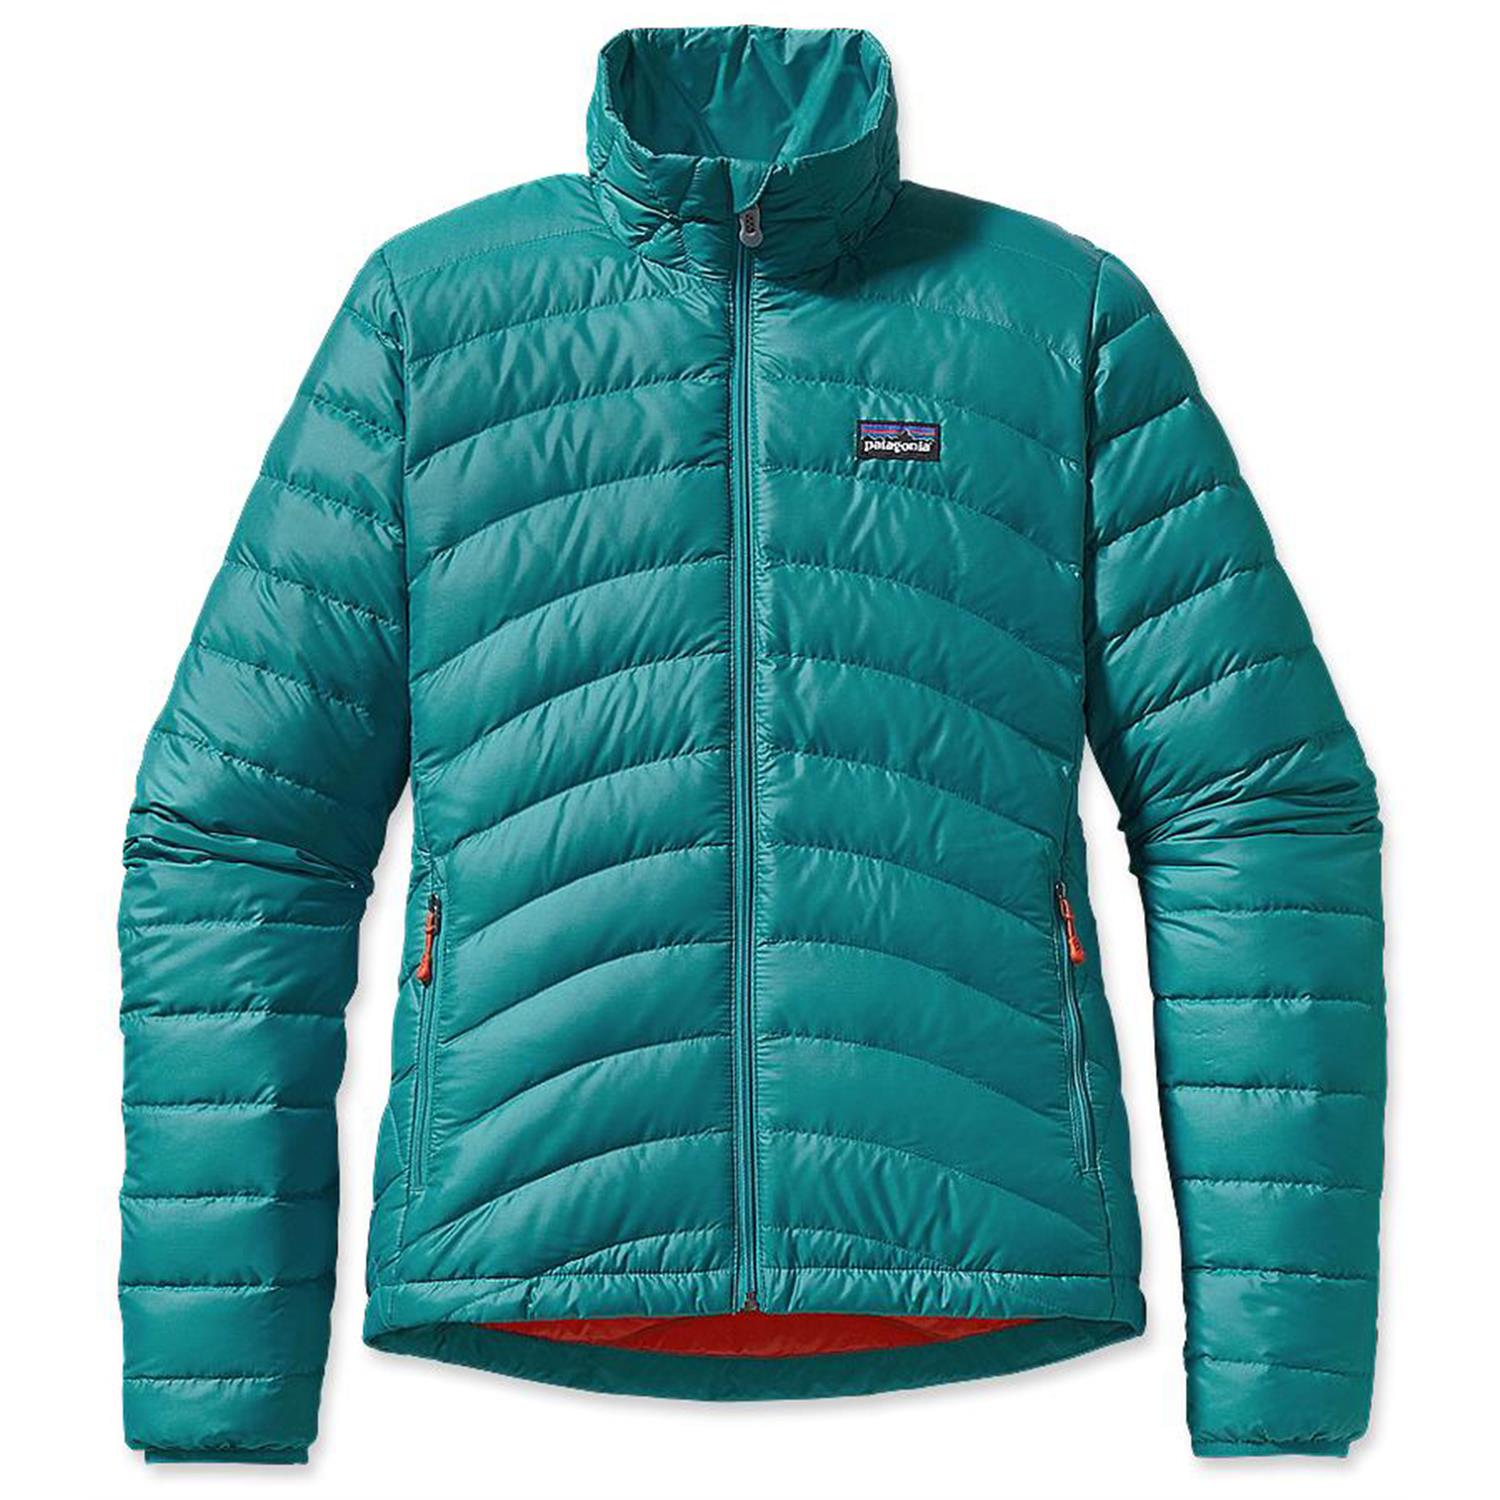 Patagonia Down Sweater Women S Evo Outlet